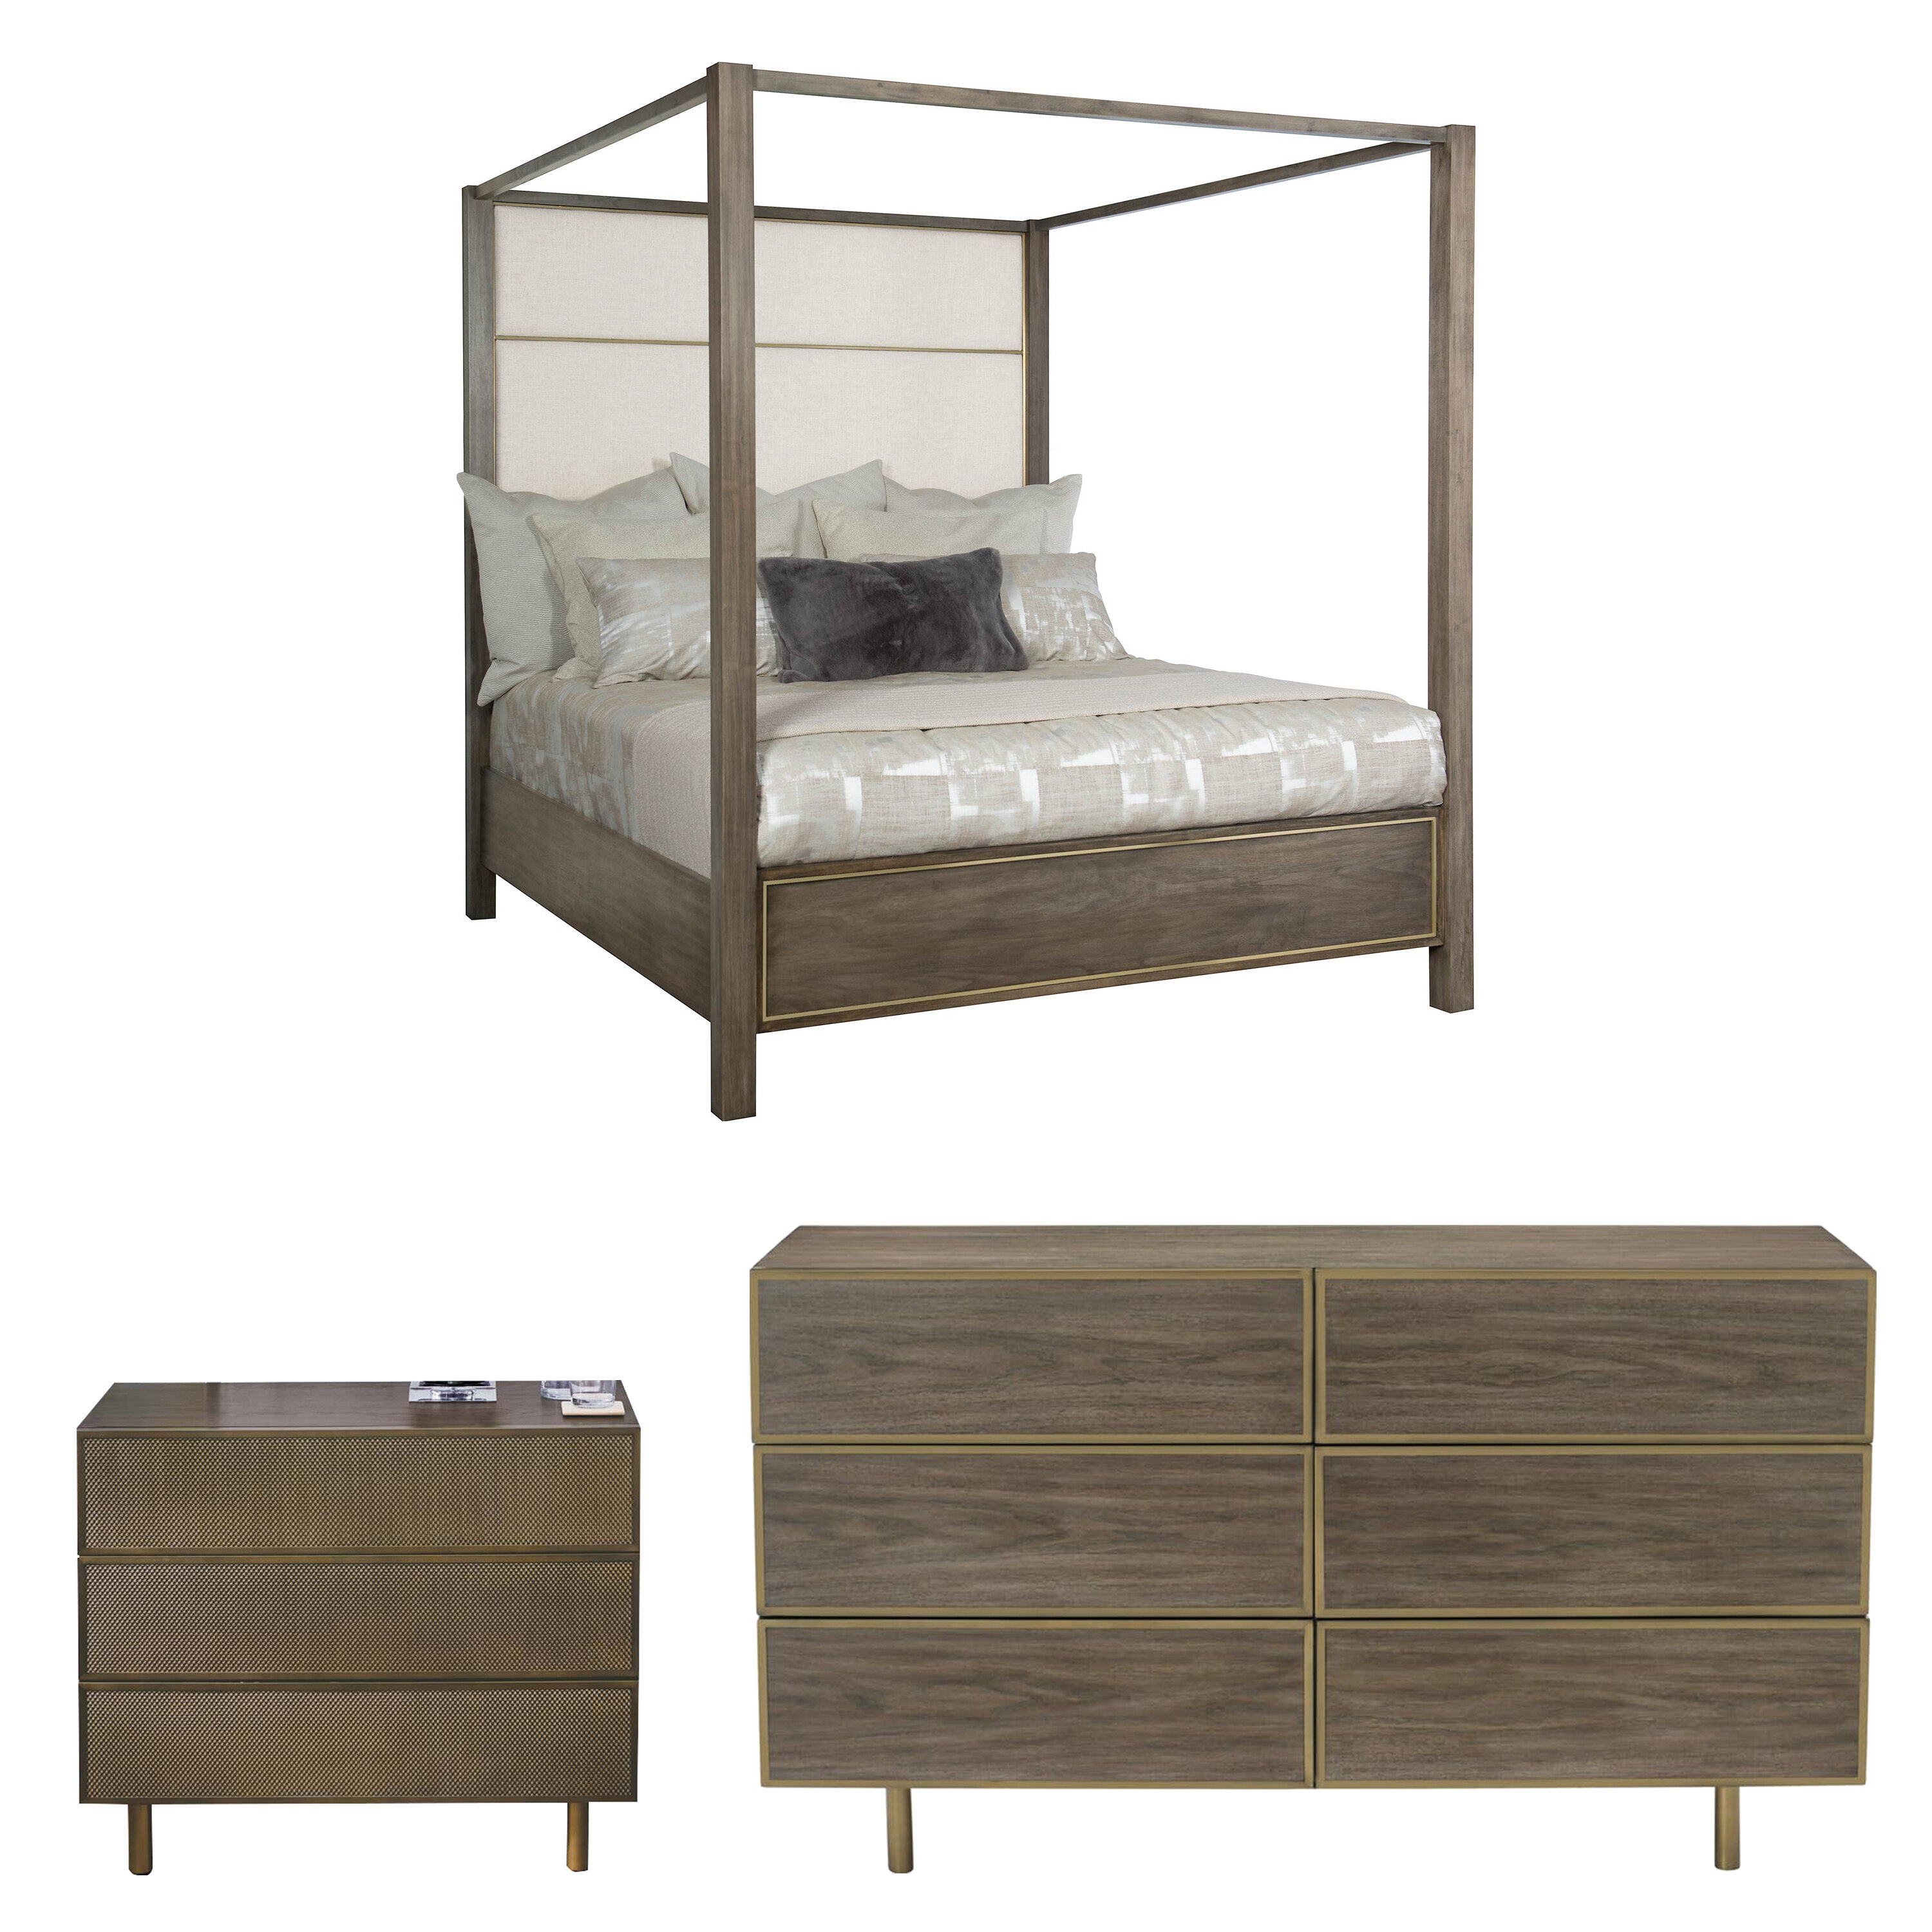 Terrific Profile King Canopy Configurable Bedroom Set Home Interior And Landscaping Analalmasignezvosmurscom